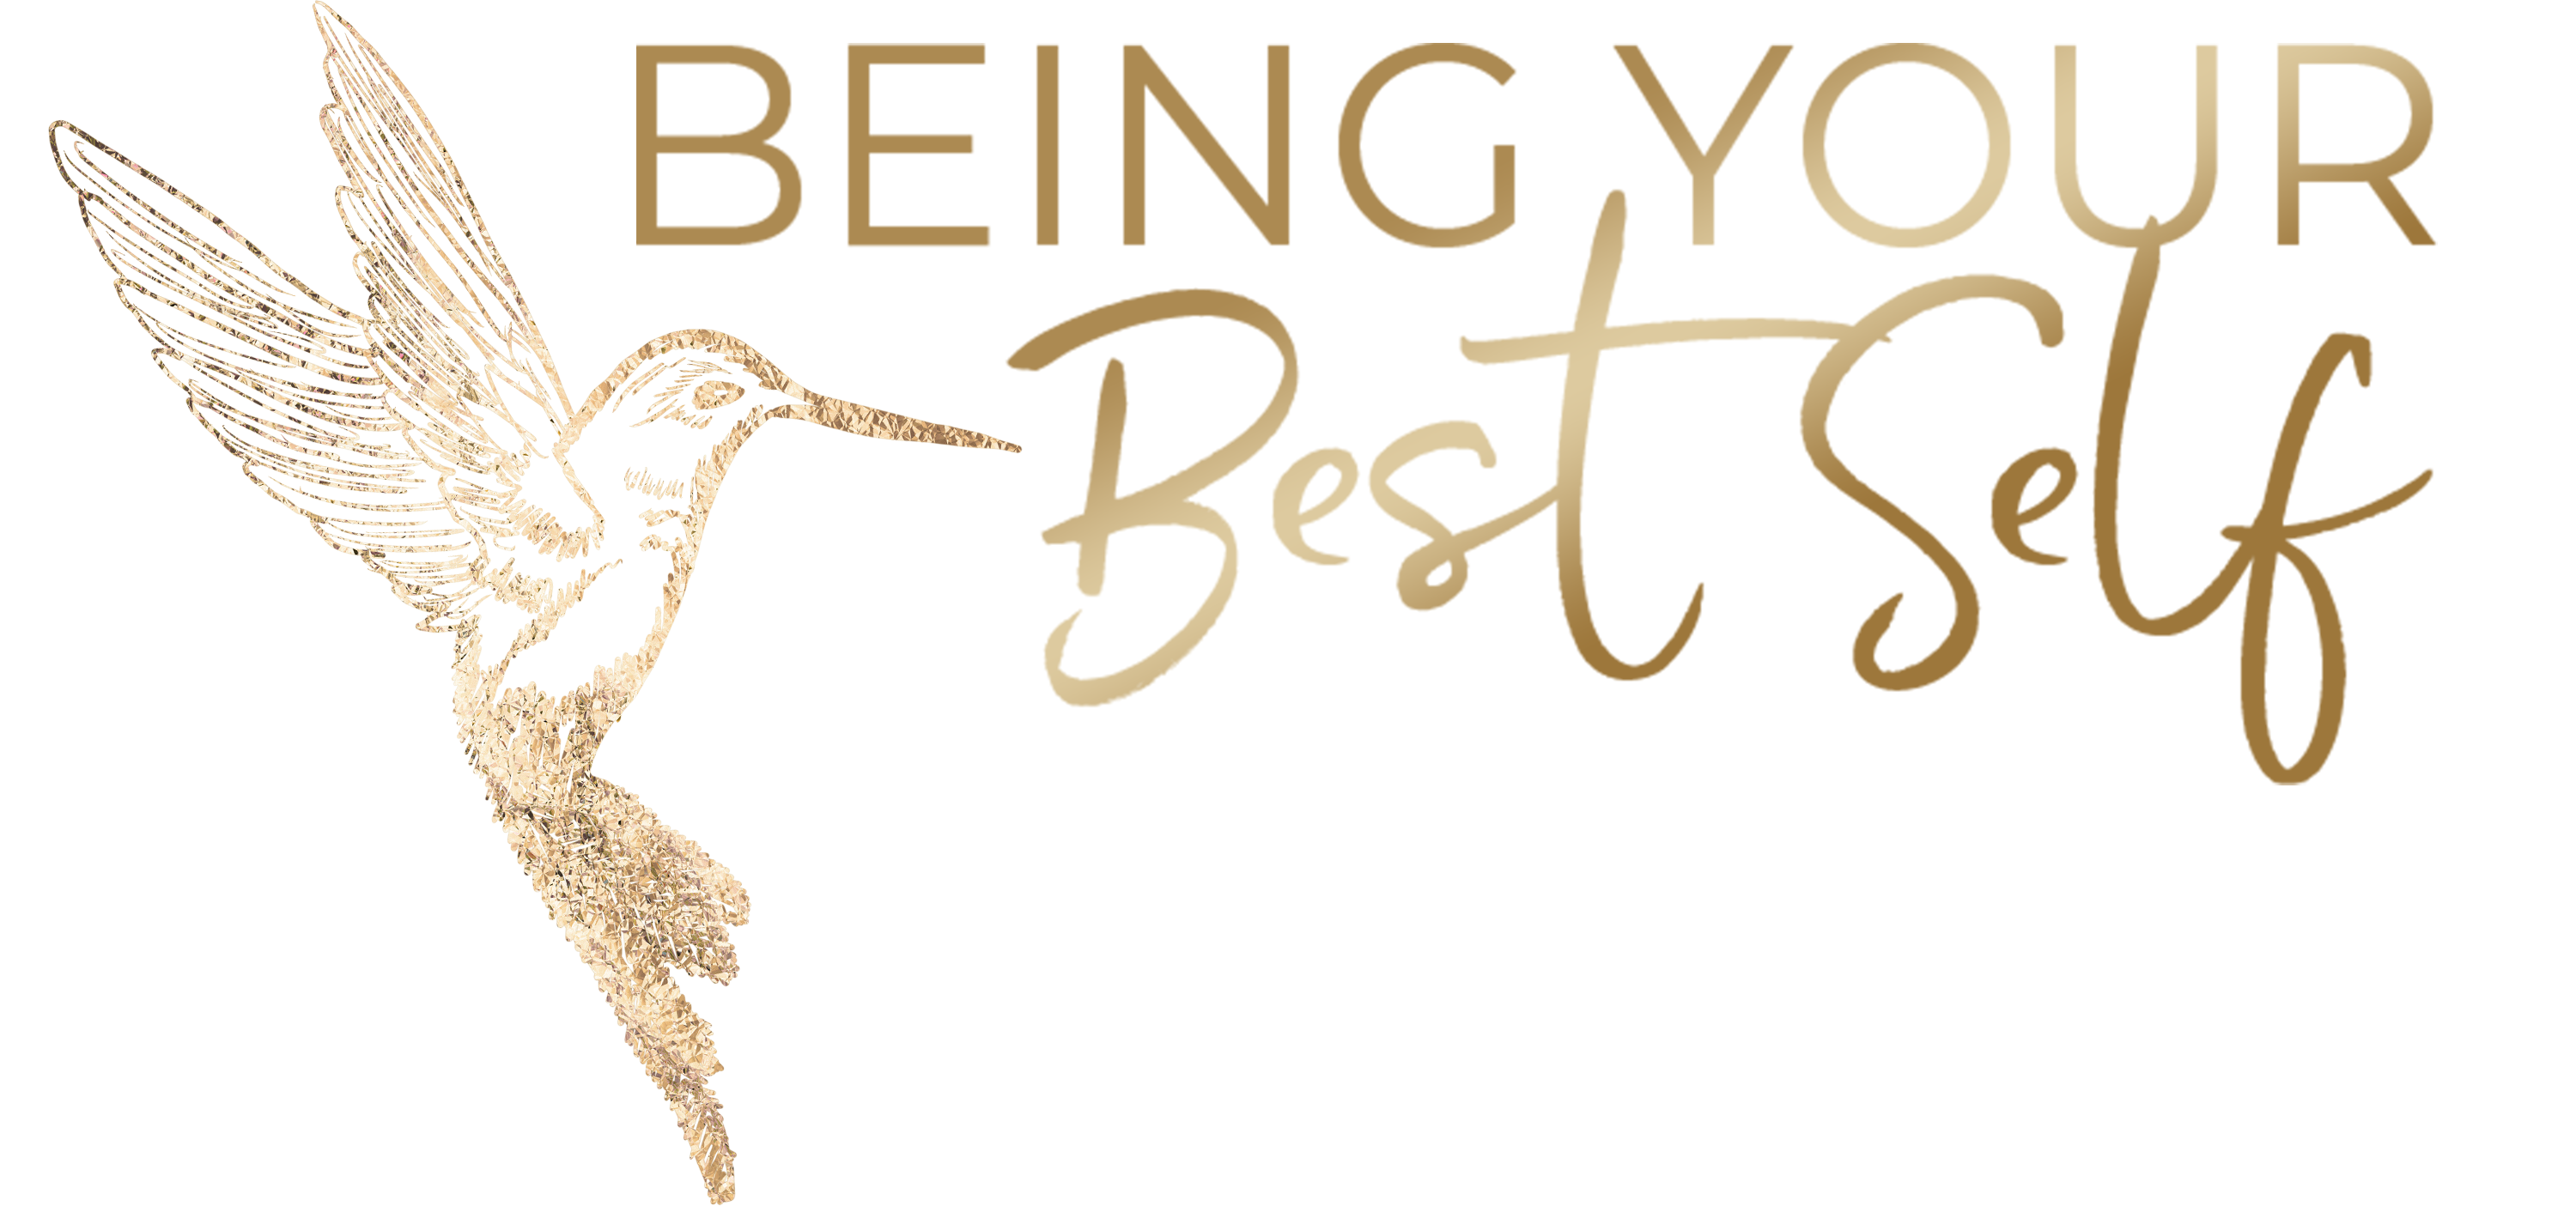 Being Your Best Self